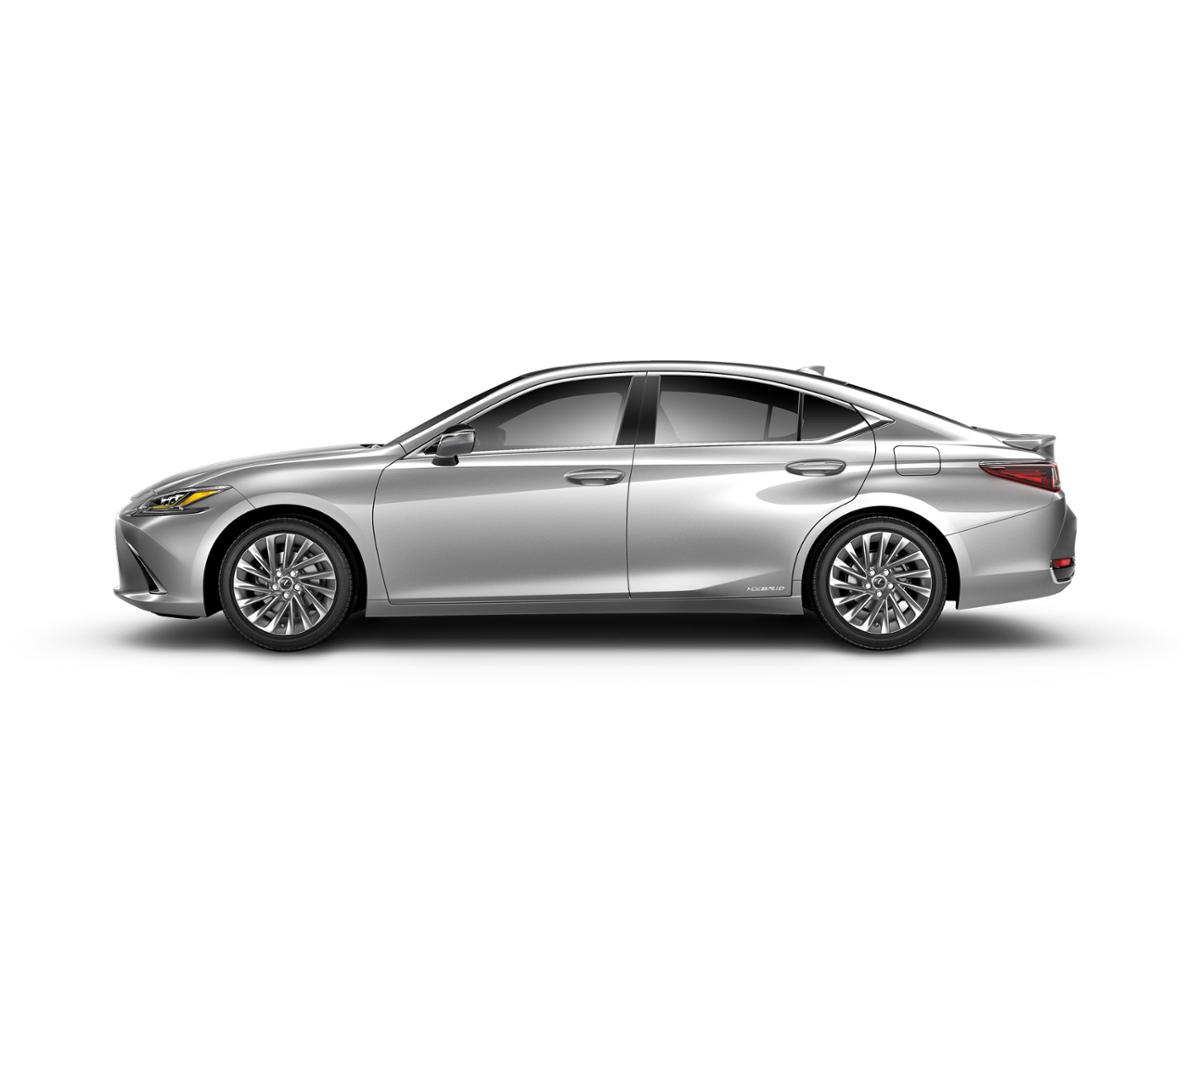 2019 Lexus Es: New Silver Lining Metallic 2019 Lexus ES 300h Ultra Luxury